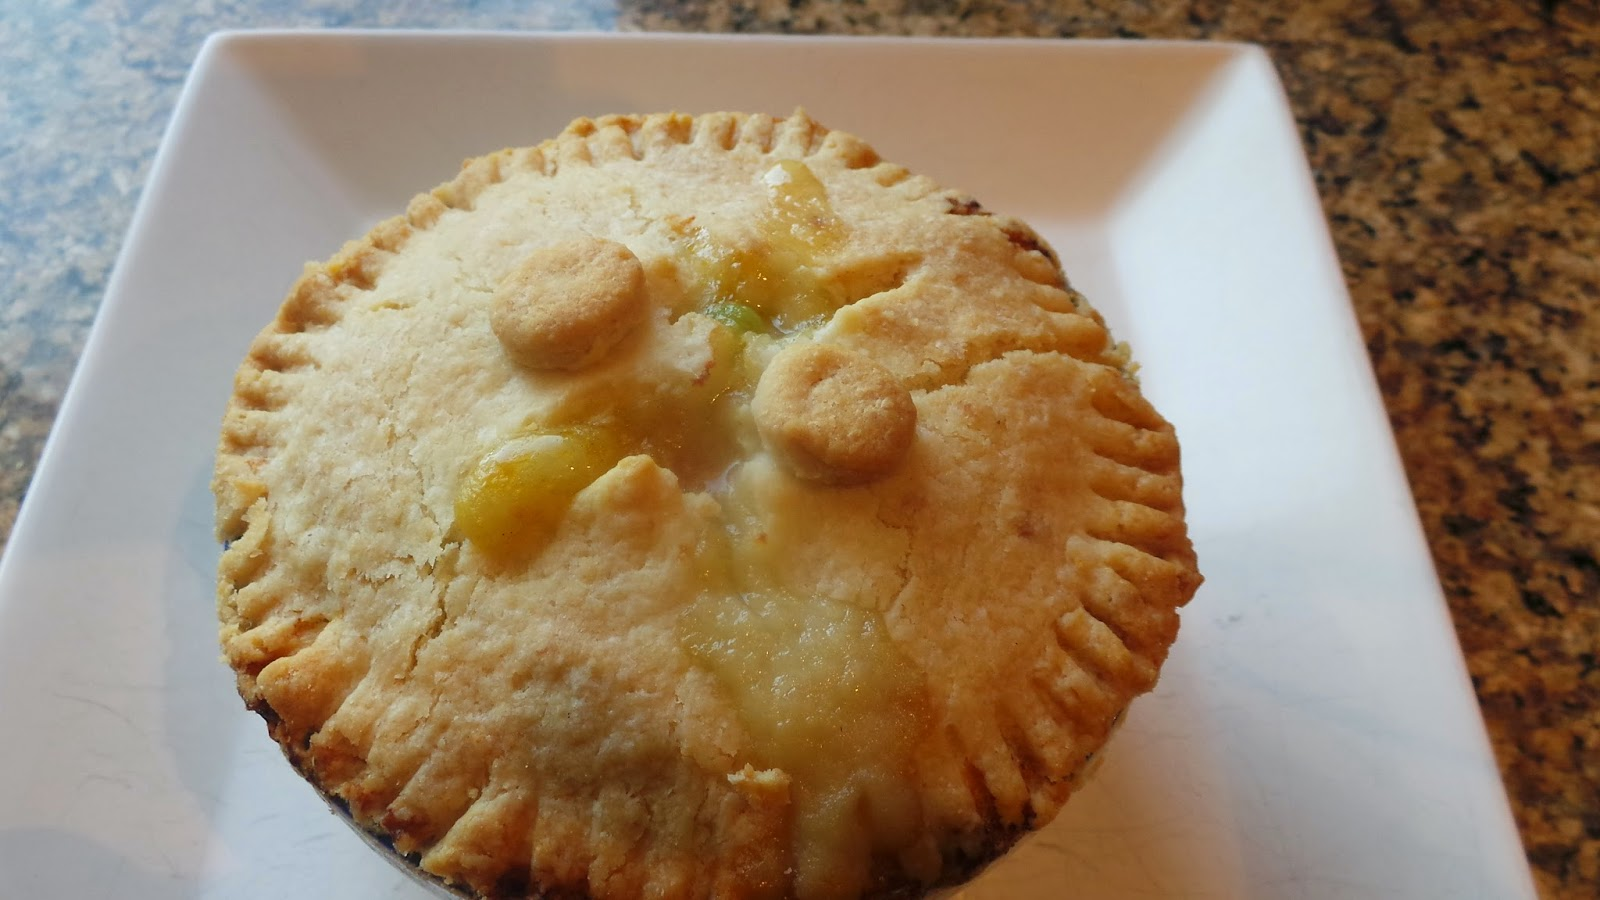 Fluudbloggler: Chicken Pot Pie in the summer?